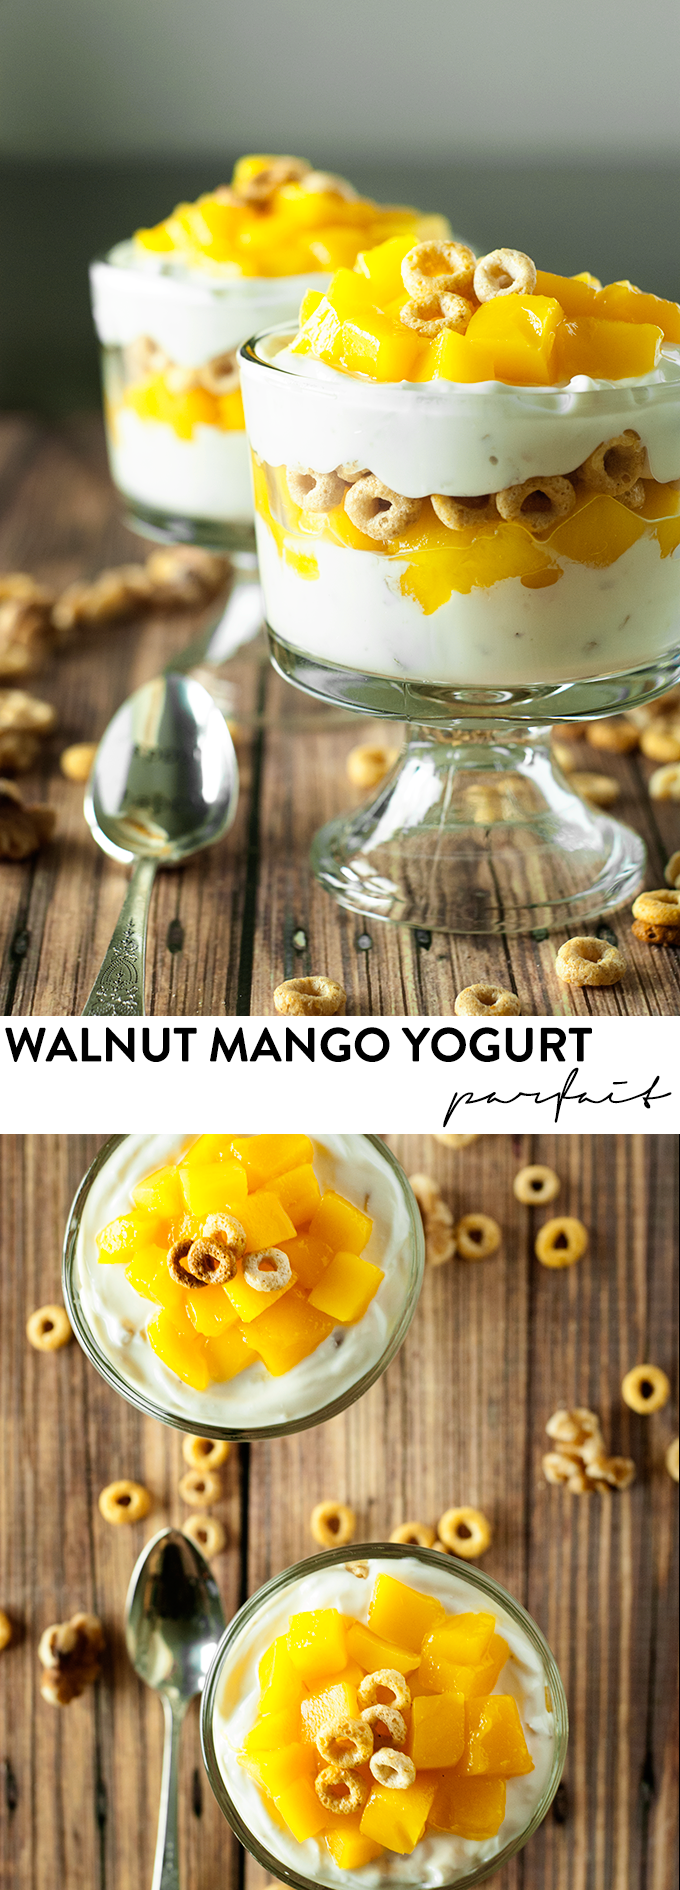 Breakfast just got better with this Walnut Mango Yogurt Parfait!